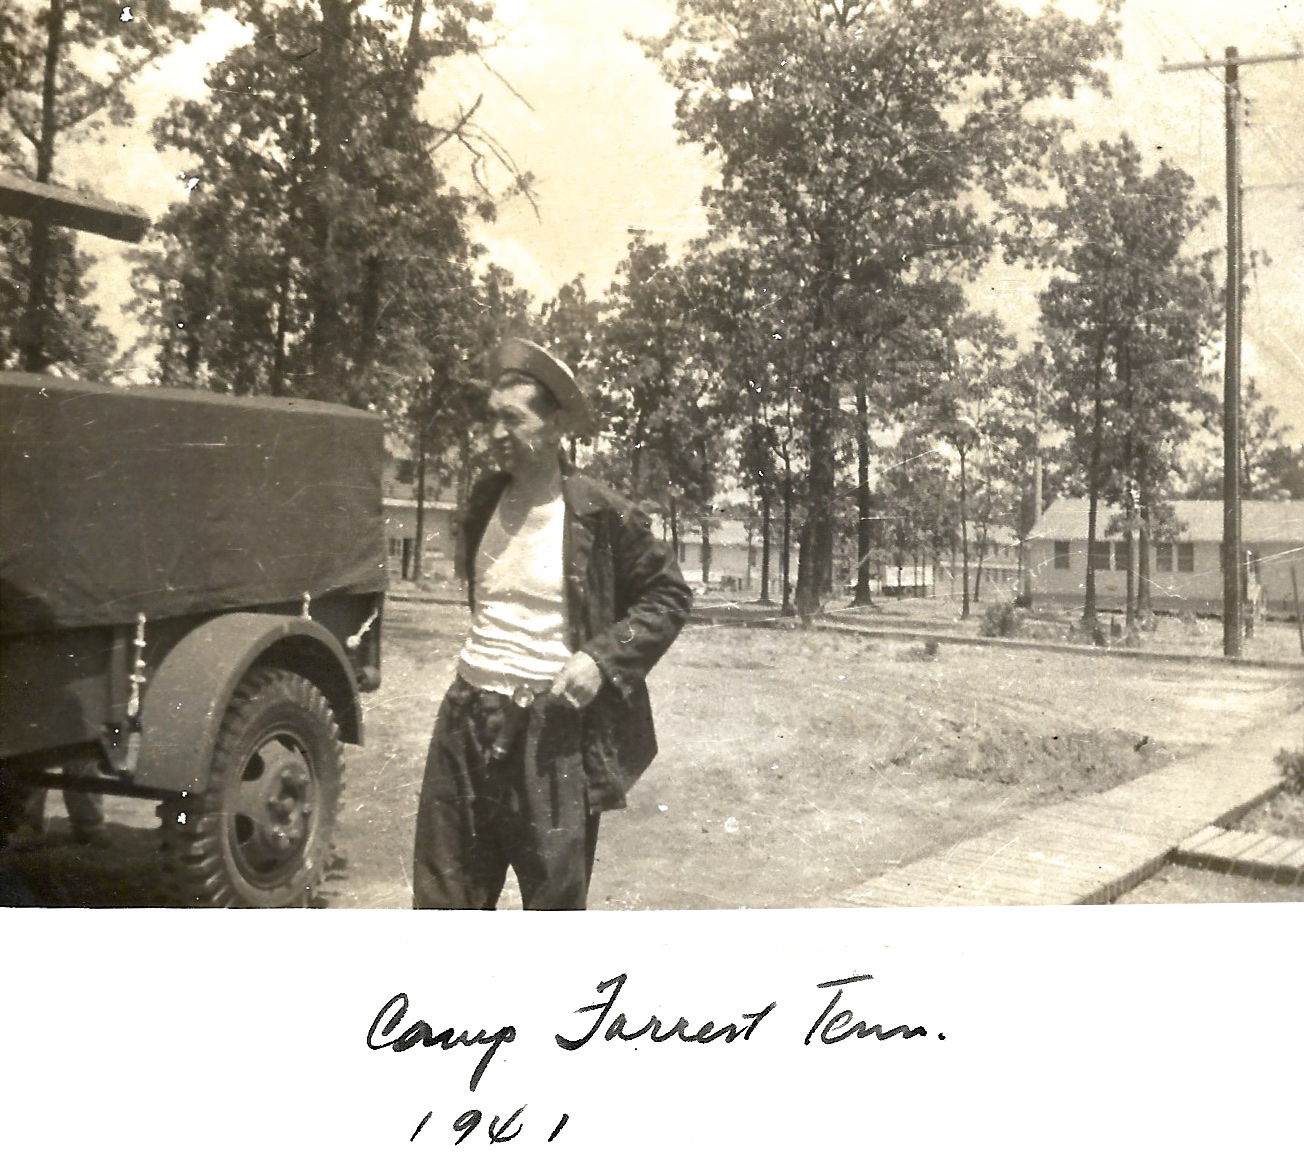 1941 WWII Unknown person. Camp Forrest, Tennessee